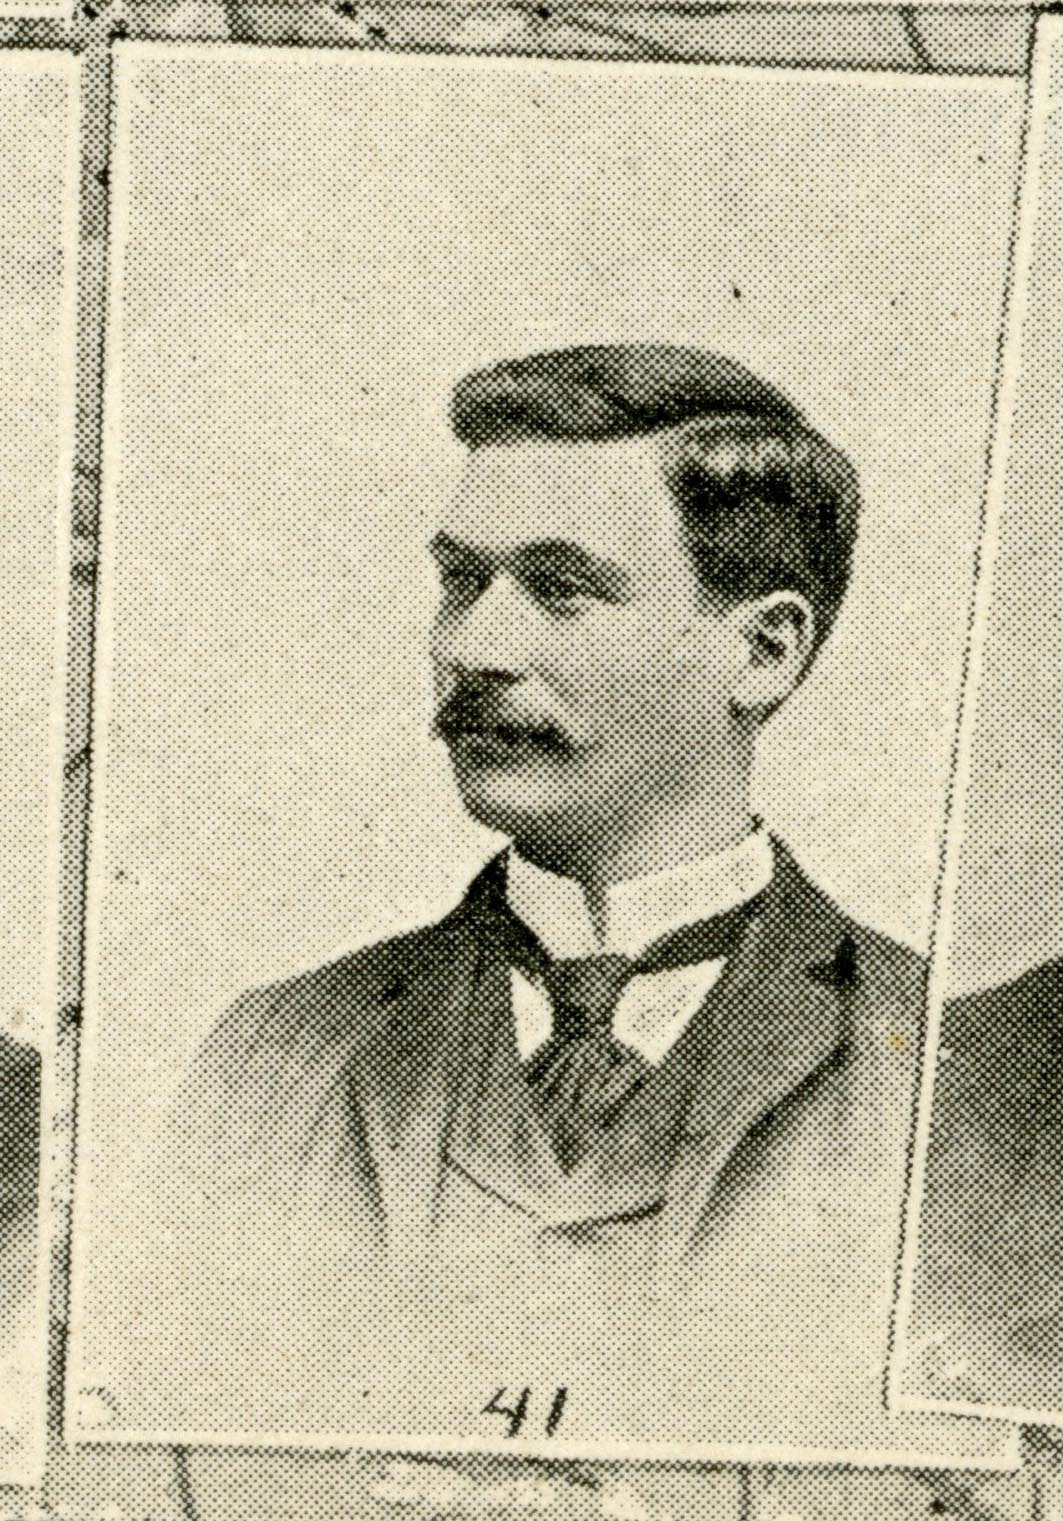 Black and white scan from the IU Arbutus yearbook. Image shows a man with dark hair and mustache wearing a suit and tie.